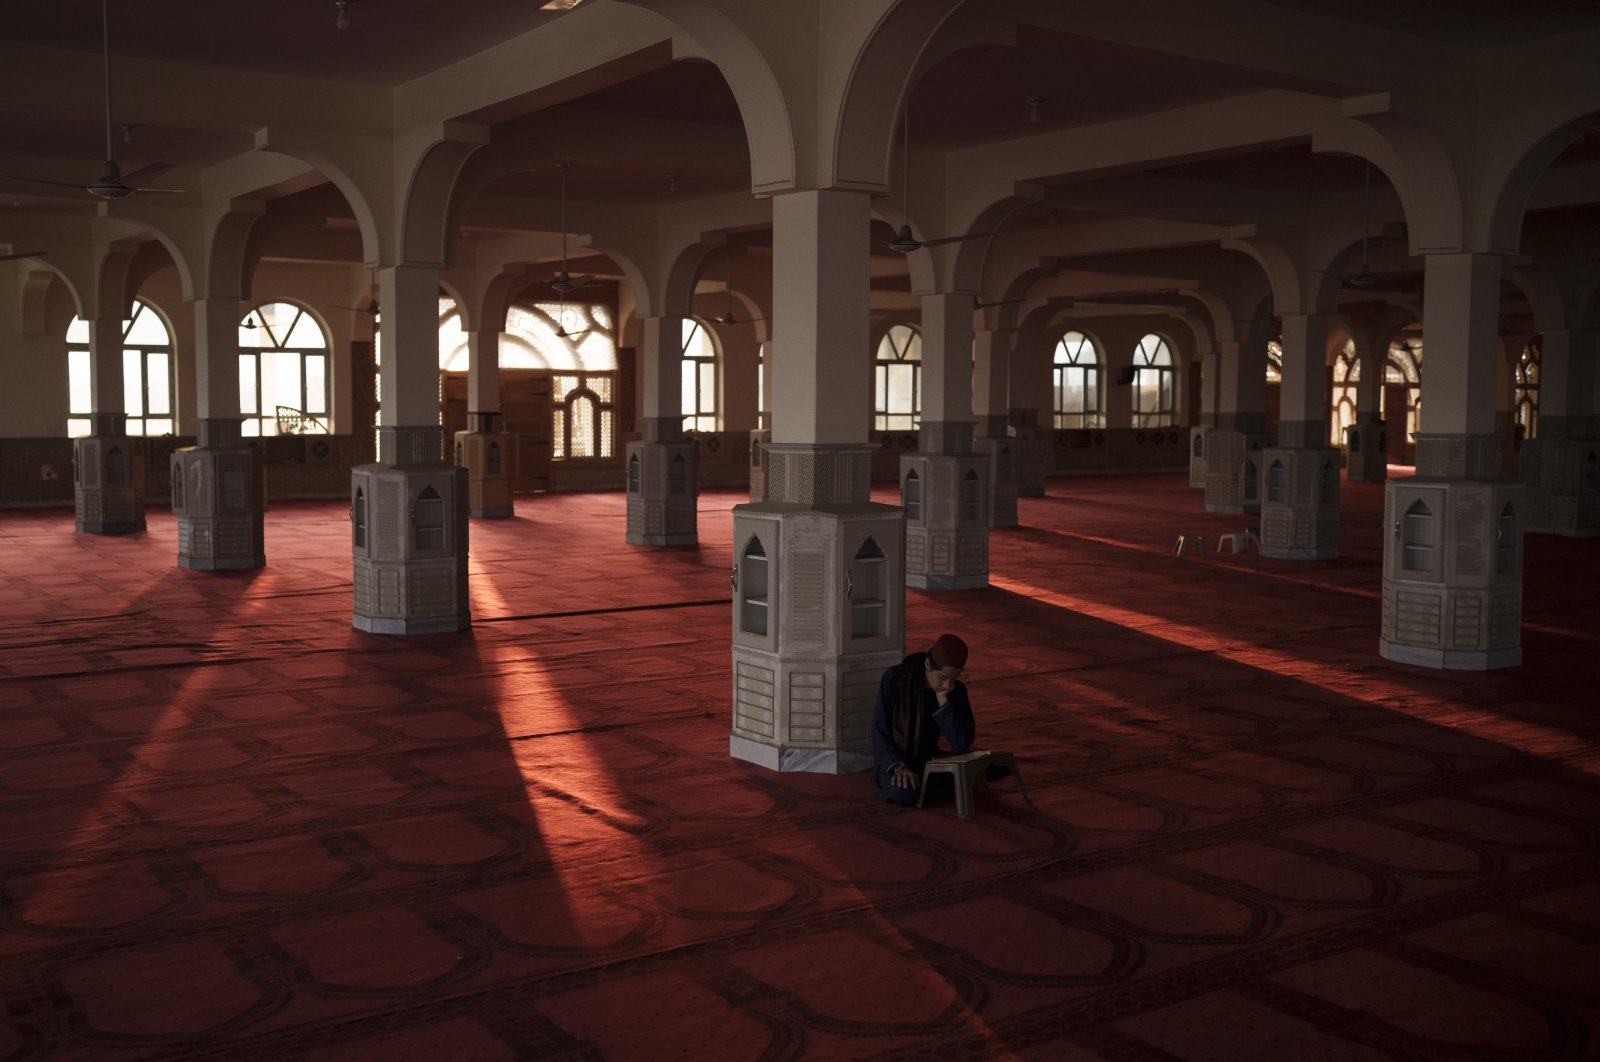 An Afghan student reads the Quran at the mosque of the Khatamul Anbiya madrasa in Kabul, Afghanistan, Sept. 29, 2021. (AP Photo)